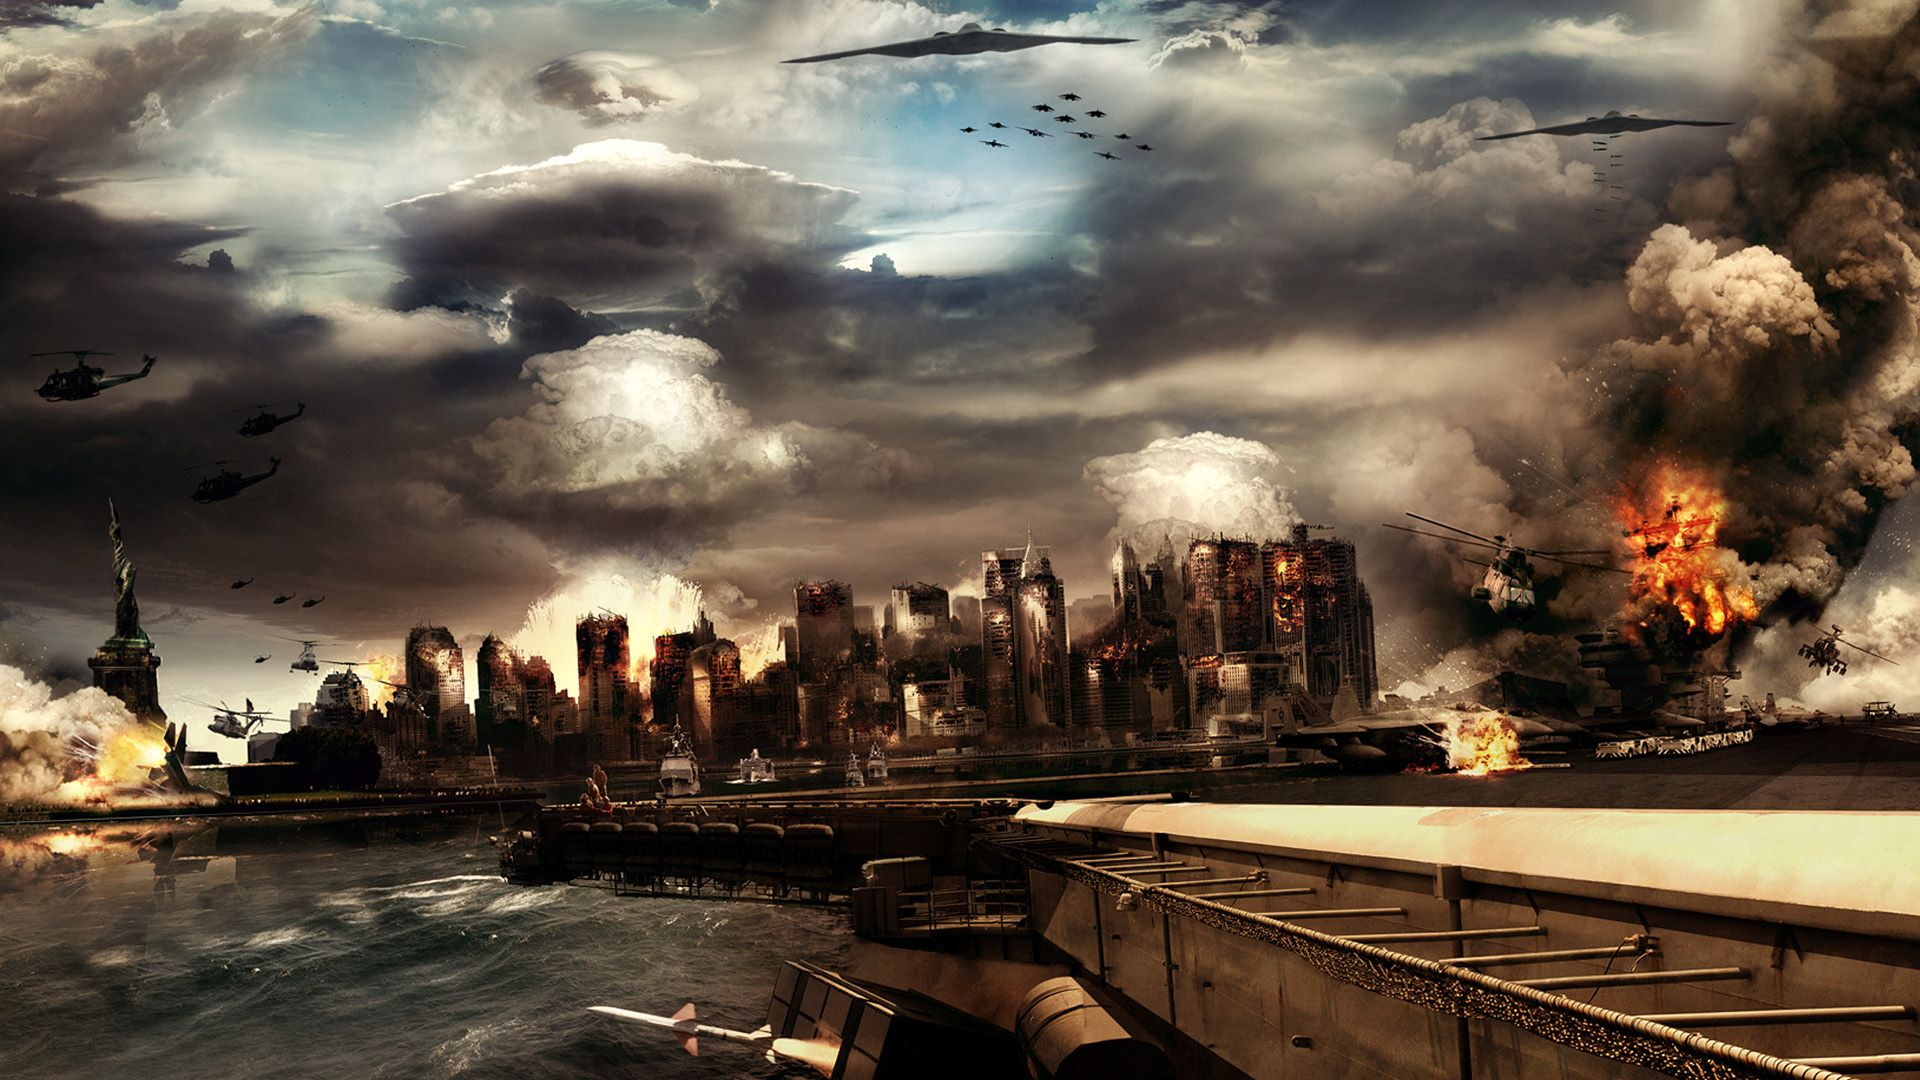 Destruction Game Scene Wallpapers Hd Wallpapers Background Images Fantasy City Cool Pictures